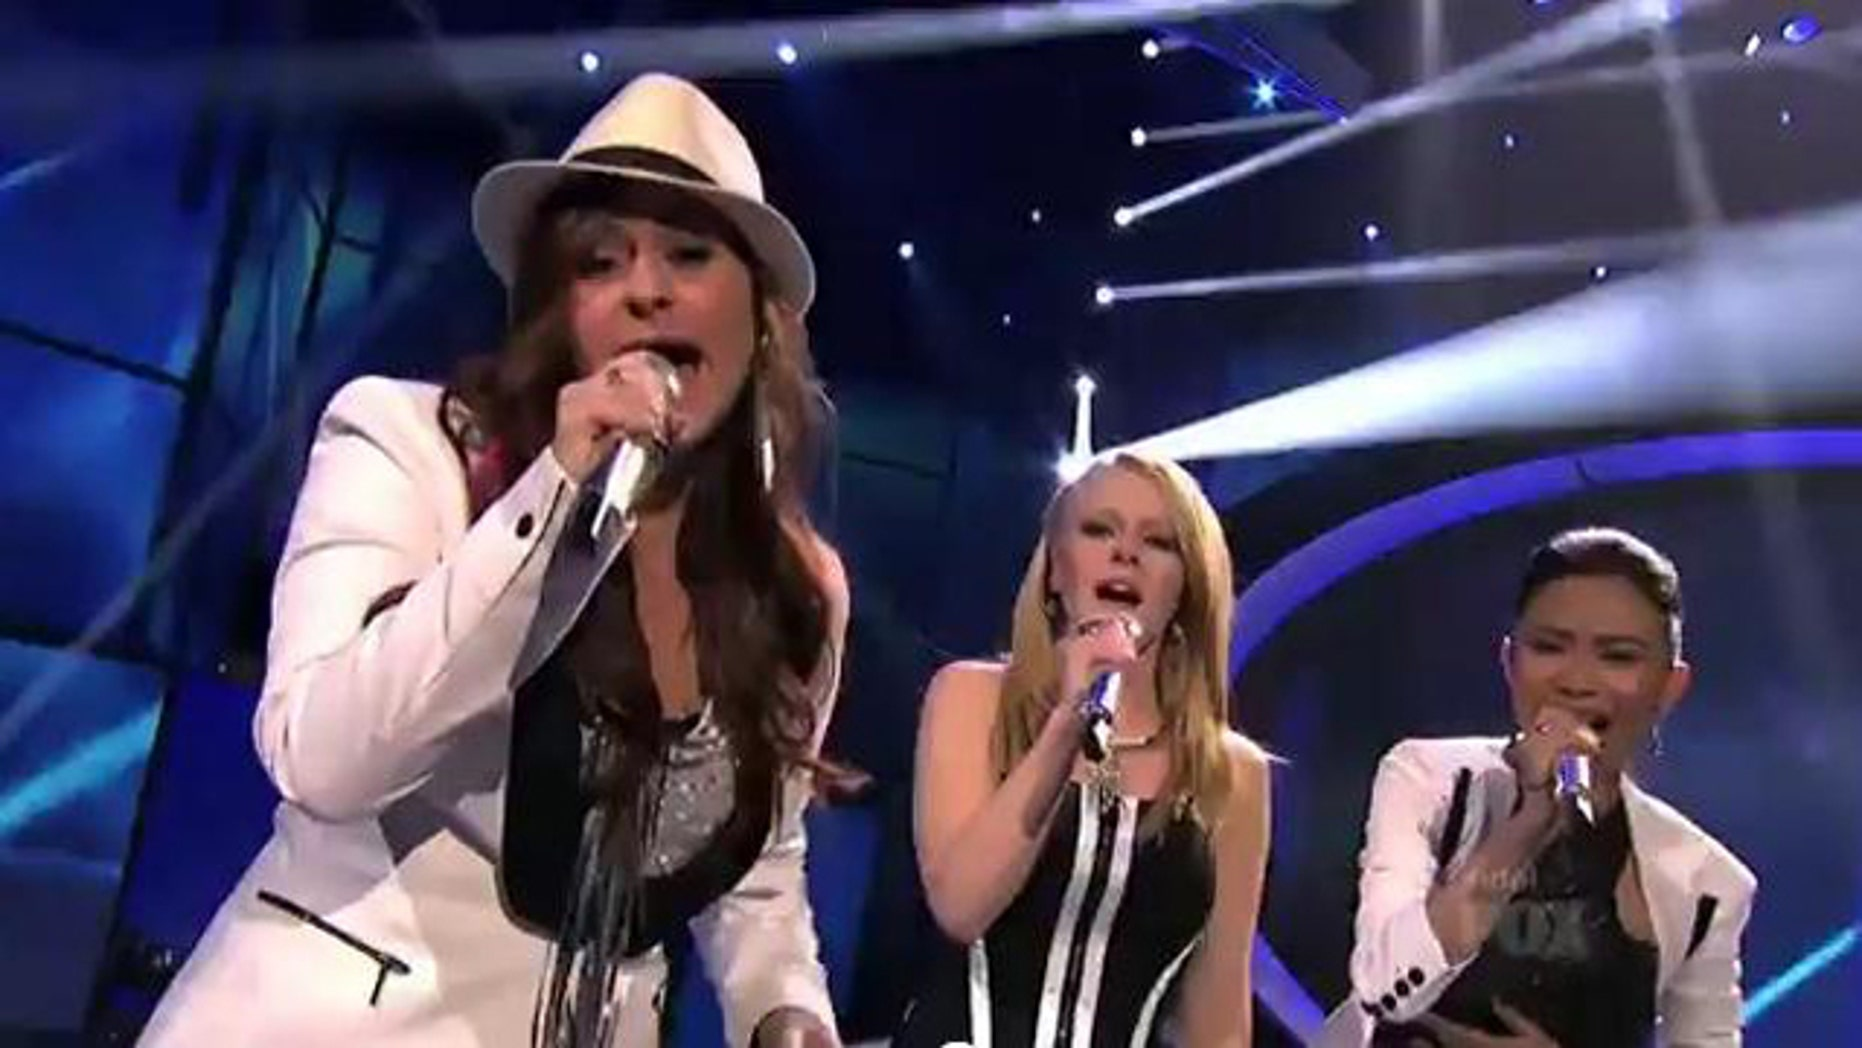 March 28, 2012: Skylar Laine, Hollie Cavannagh and Jessica Sanchez sing a medley of Madonna songs on American Idol Wednesday evening.